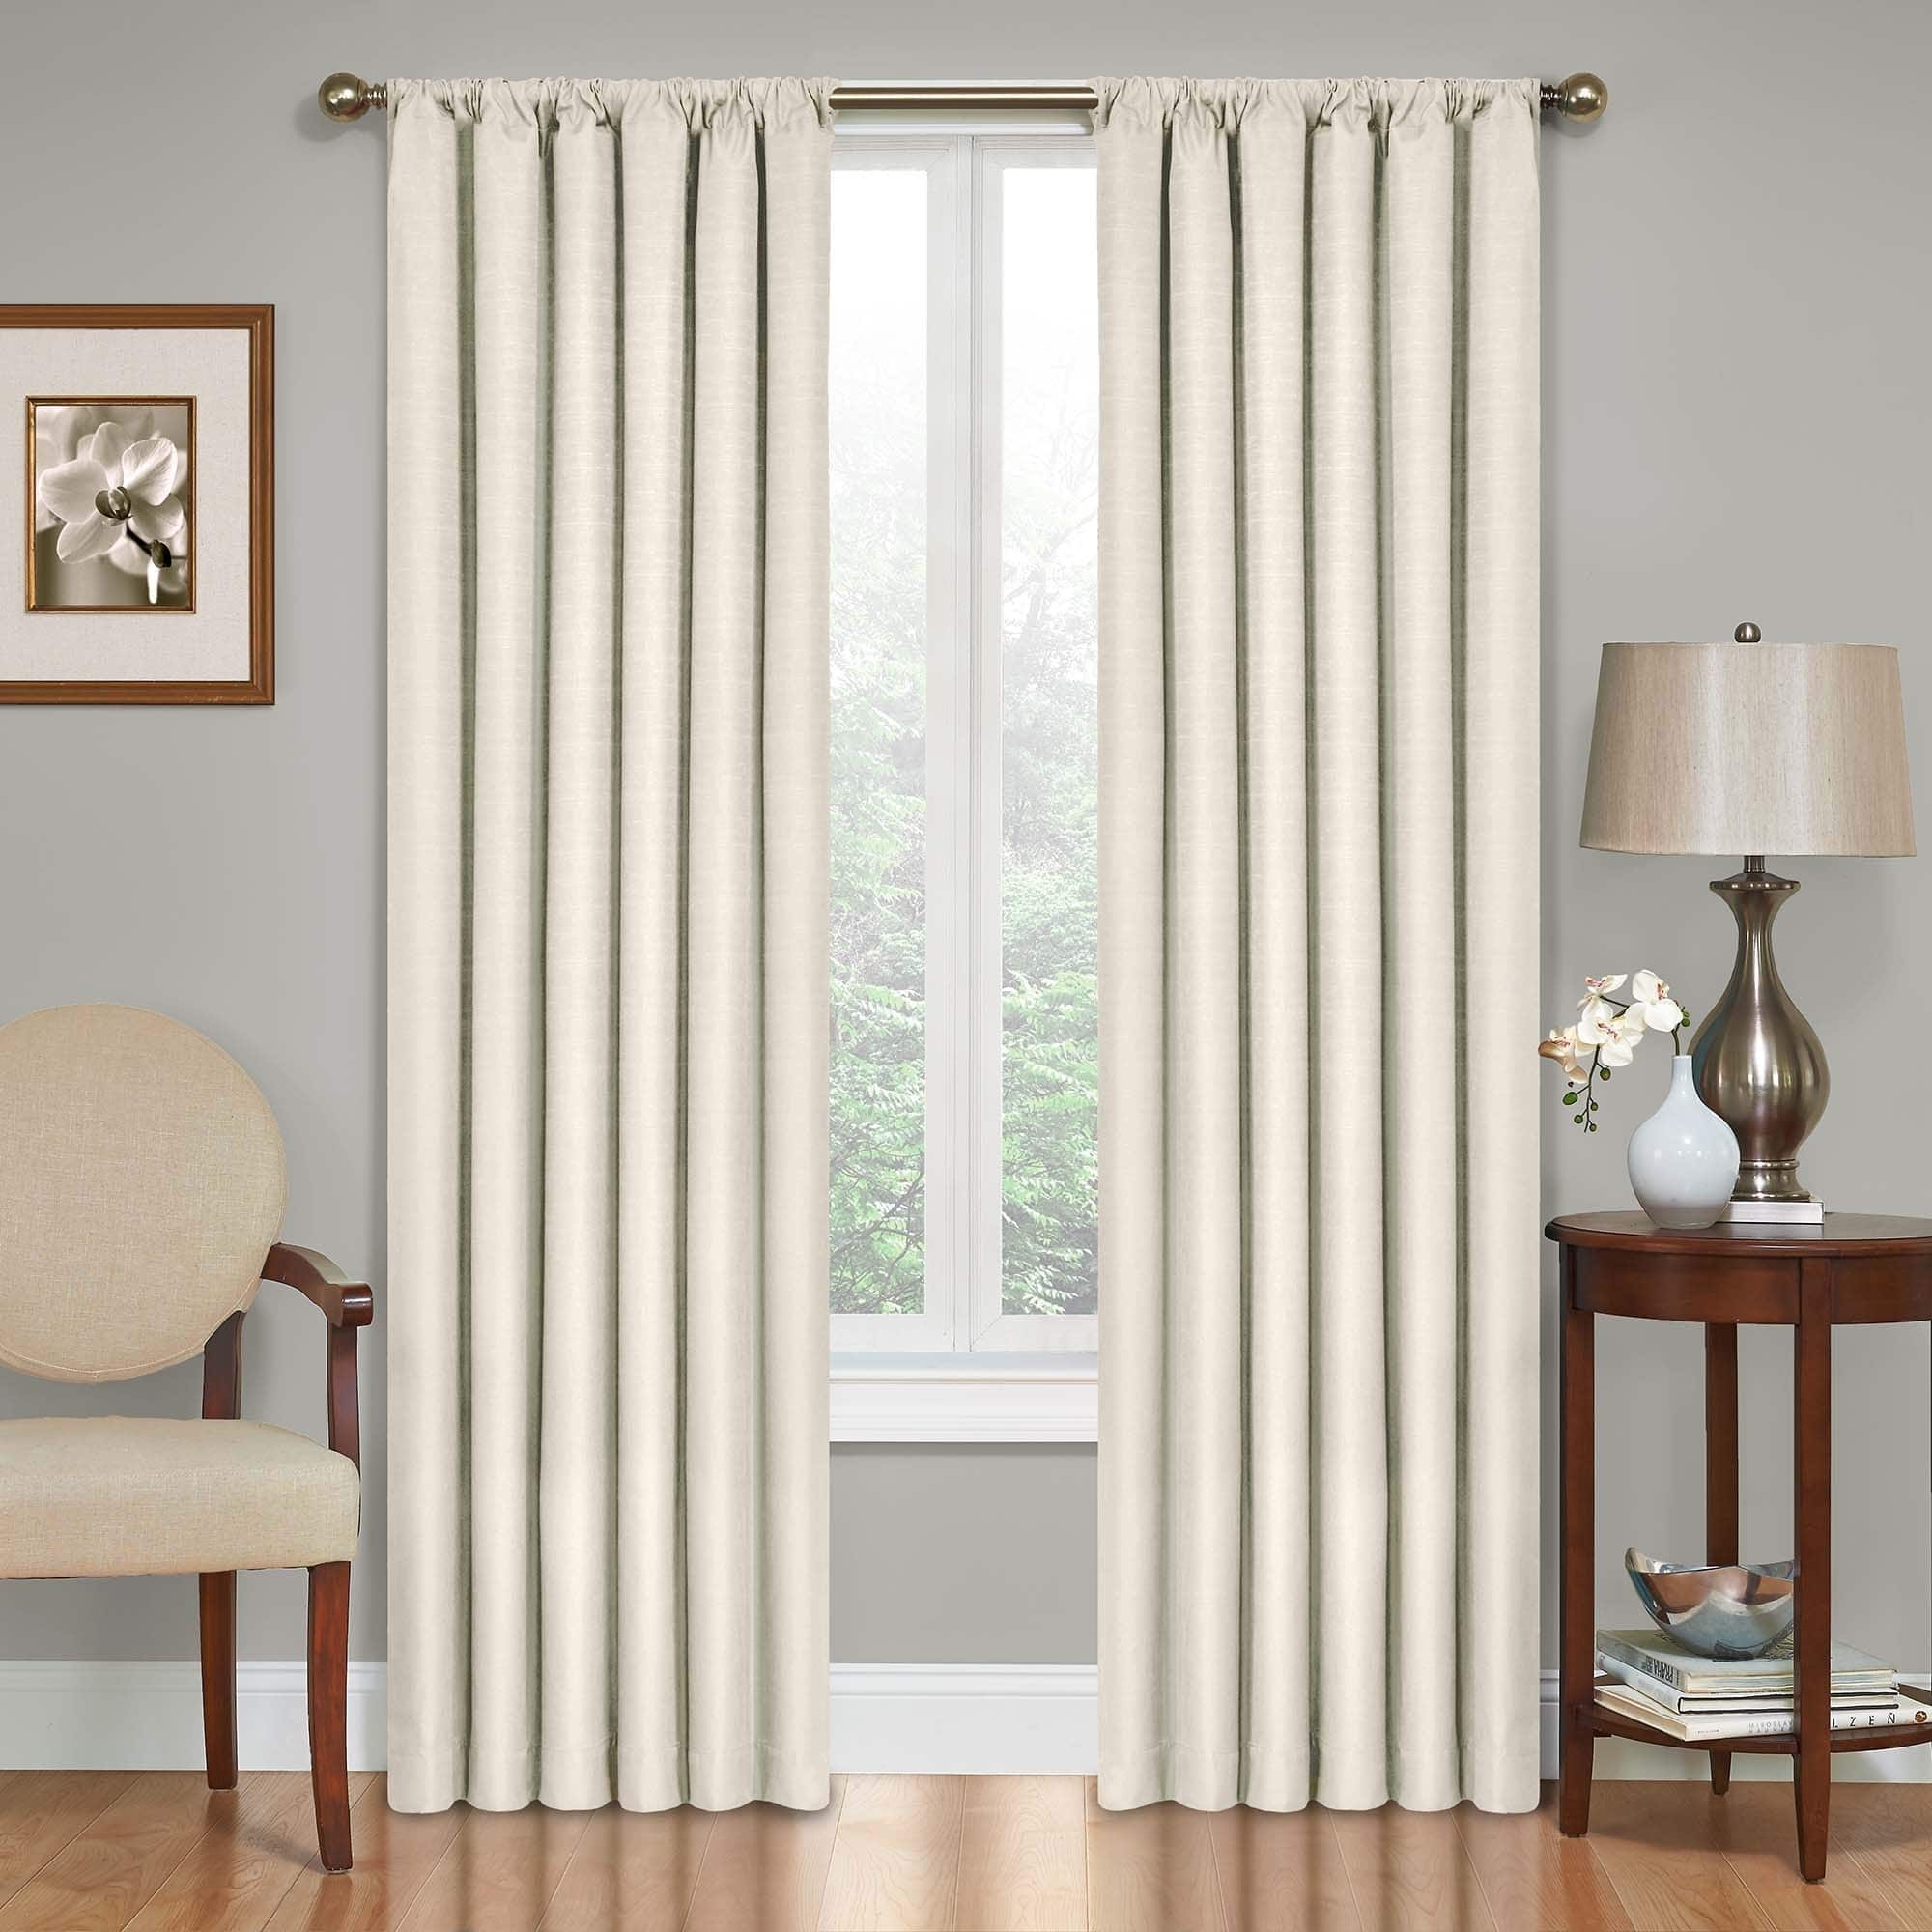 even pillows or fabric inspirational throw reasonably overstock was drapes of online priced this